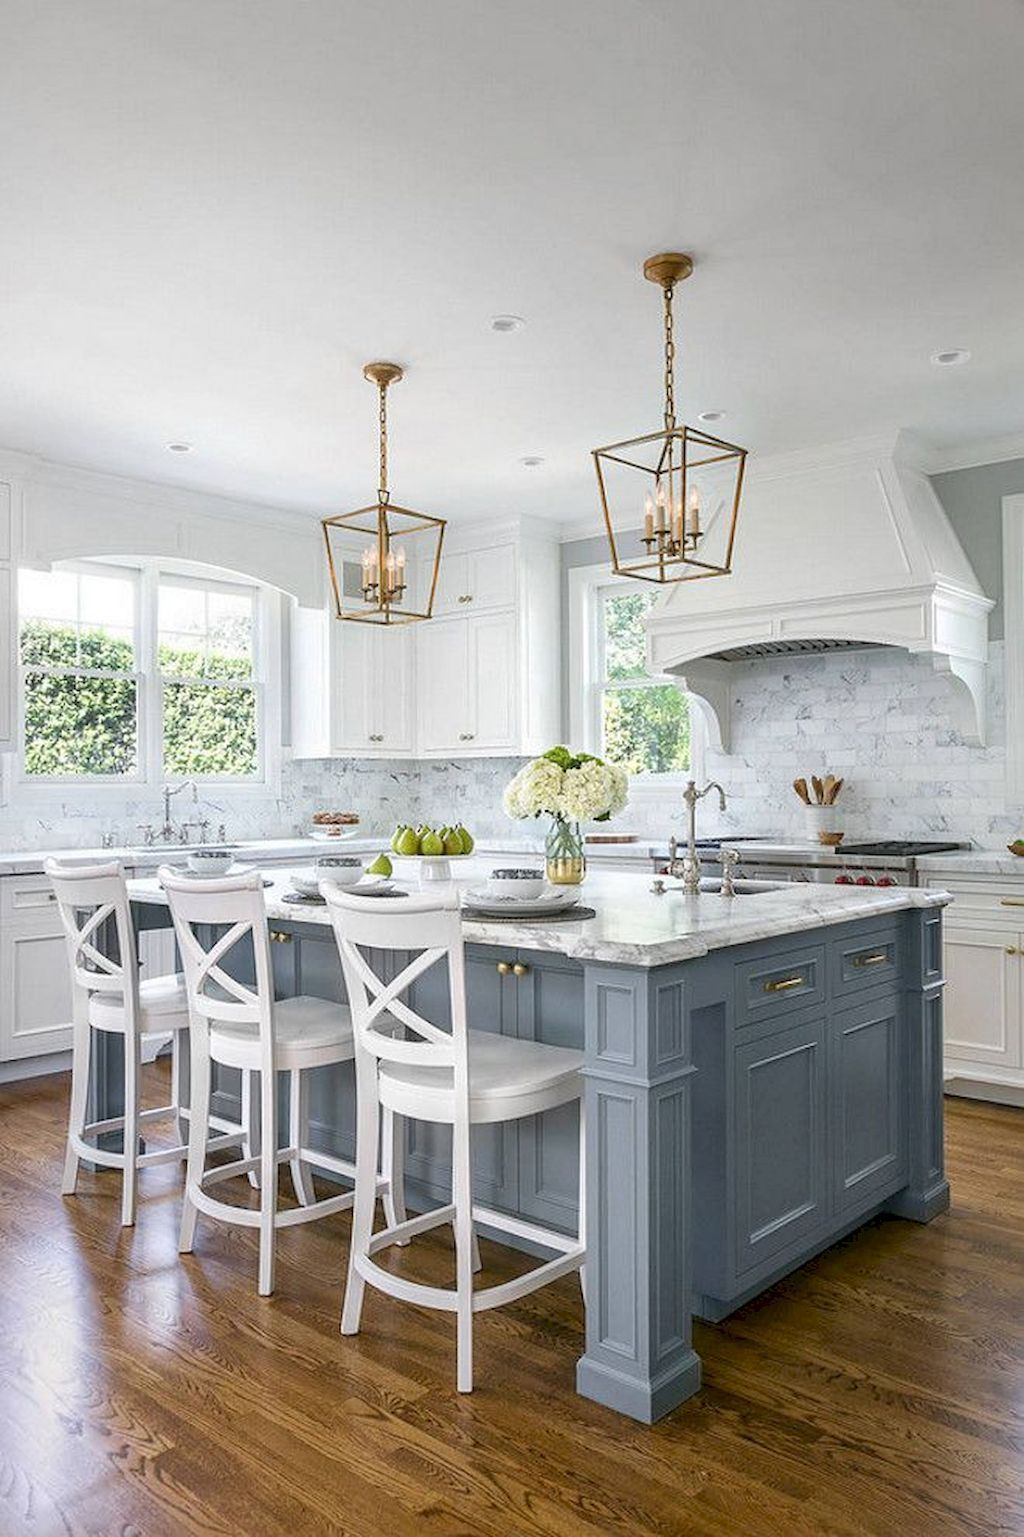 Ideas and expert tips on kitchen cabinet designs so you can create ...